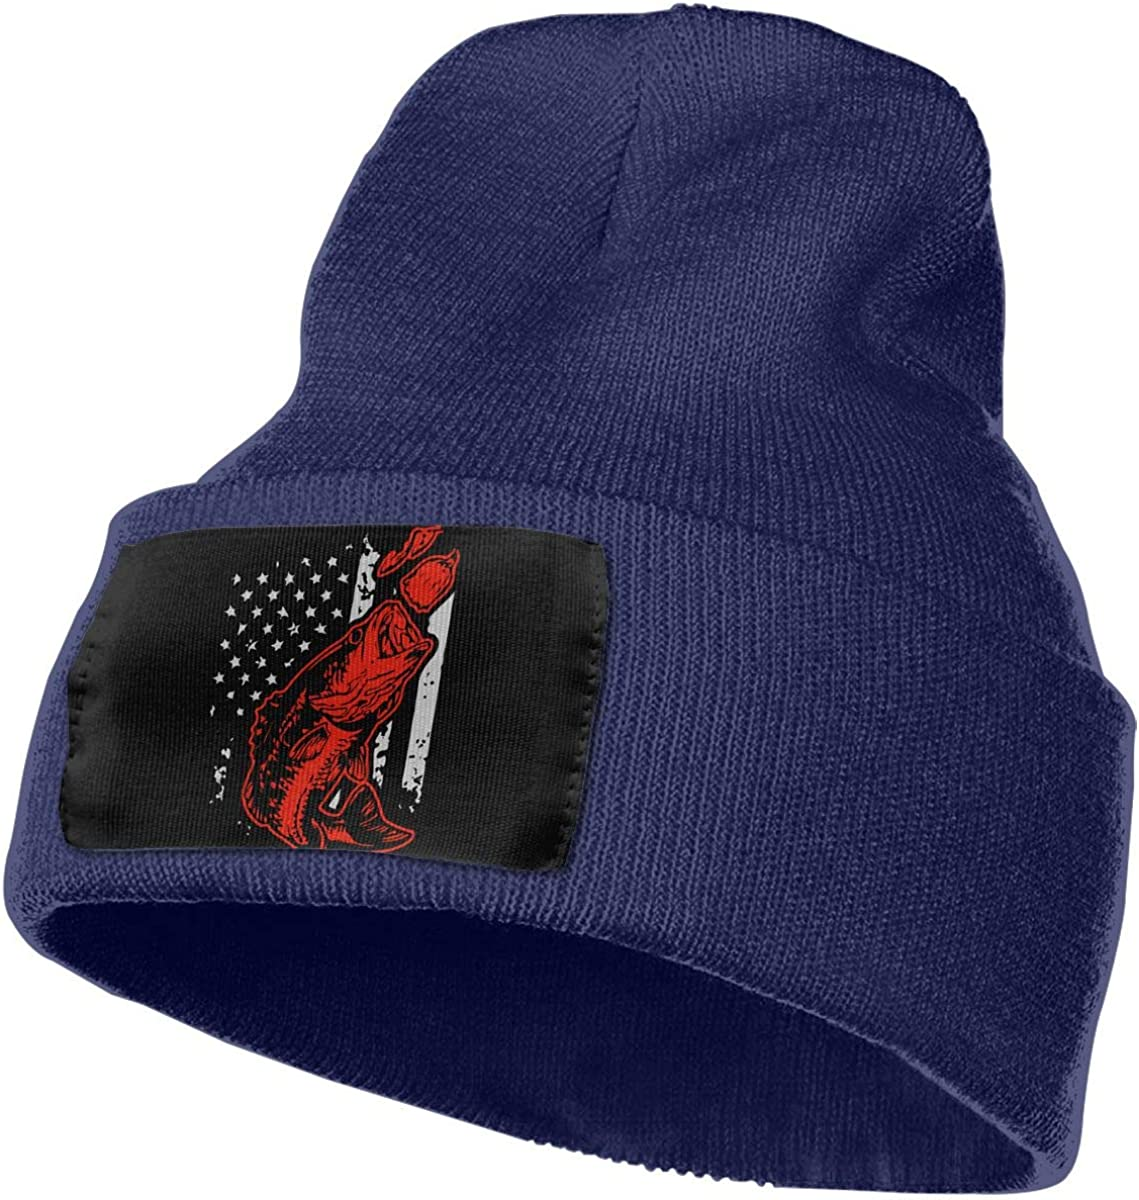 Bass Fishing Lure and American Flag Men Women Knit Hats Stretchy /& Soft Ski Cap Beanie